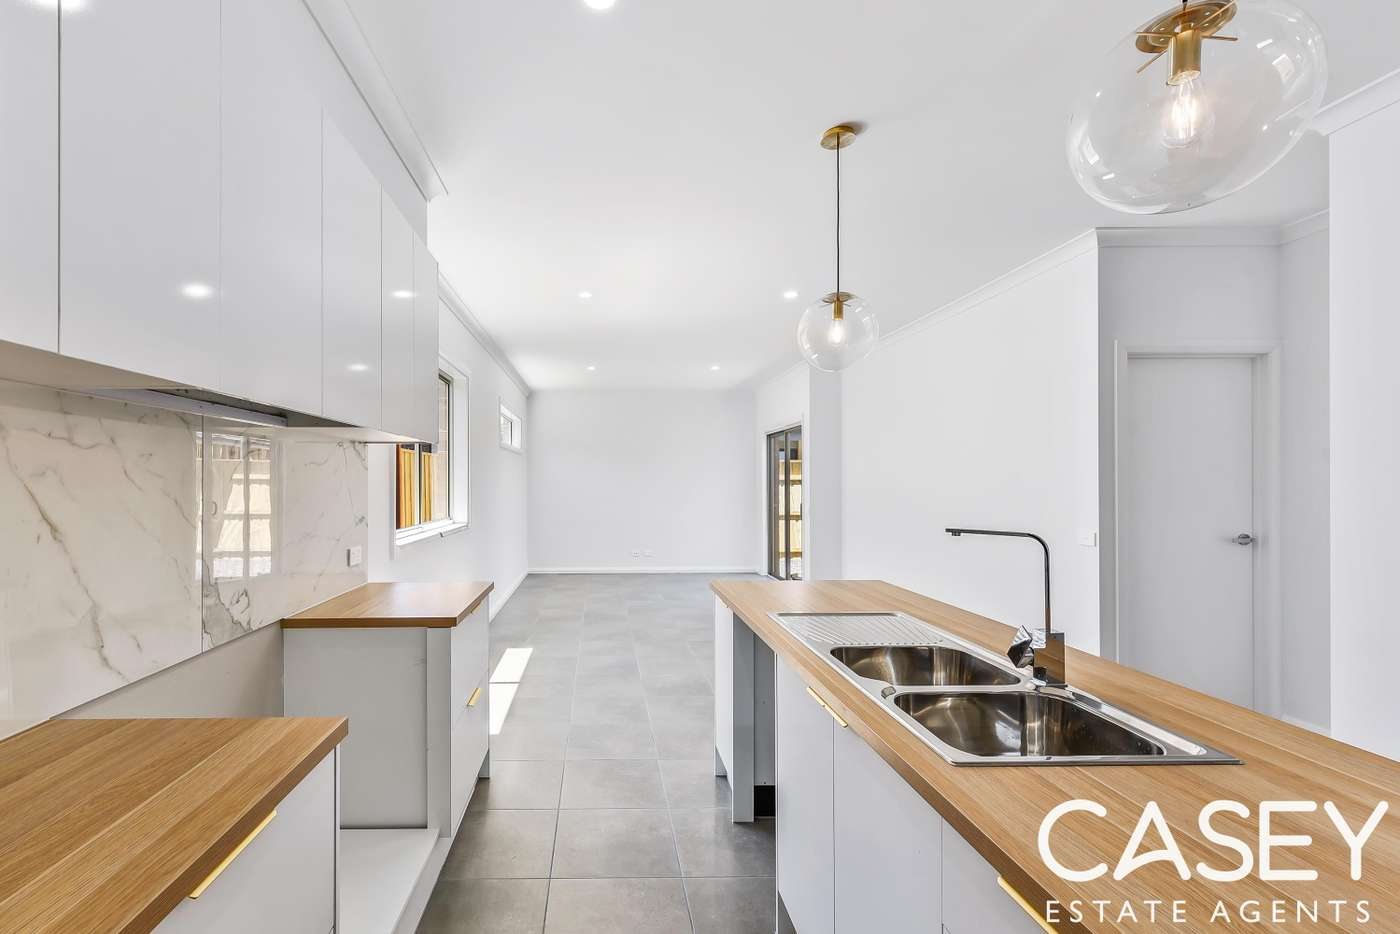 Fifth view of Homely house listing, 8 Diplomat Crescent, Cranbourne South VIC 3977